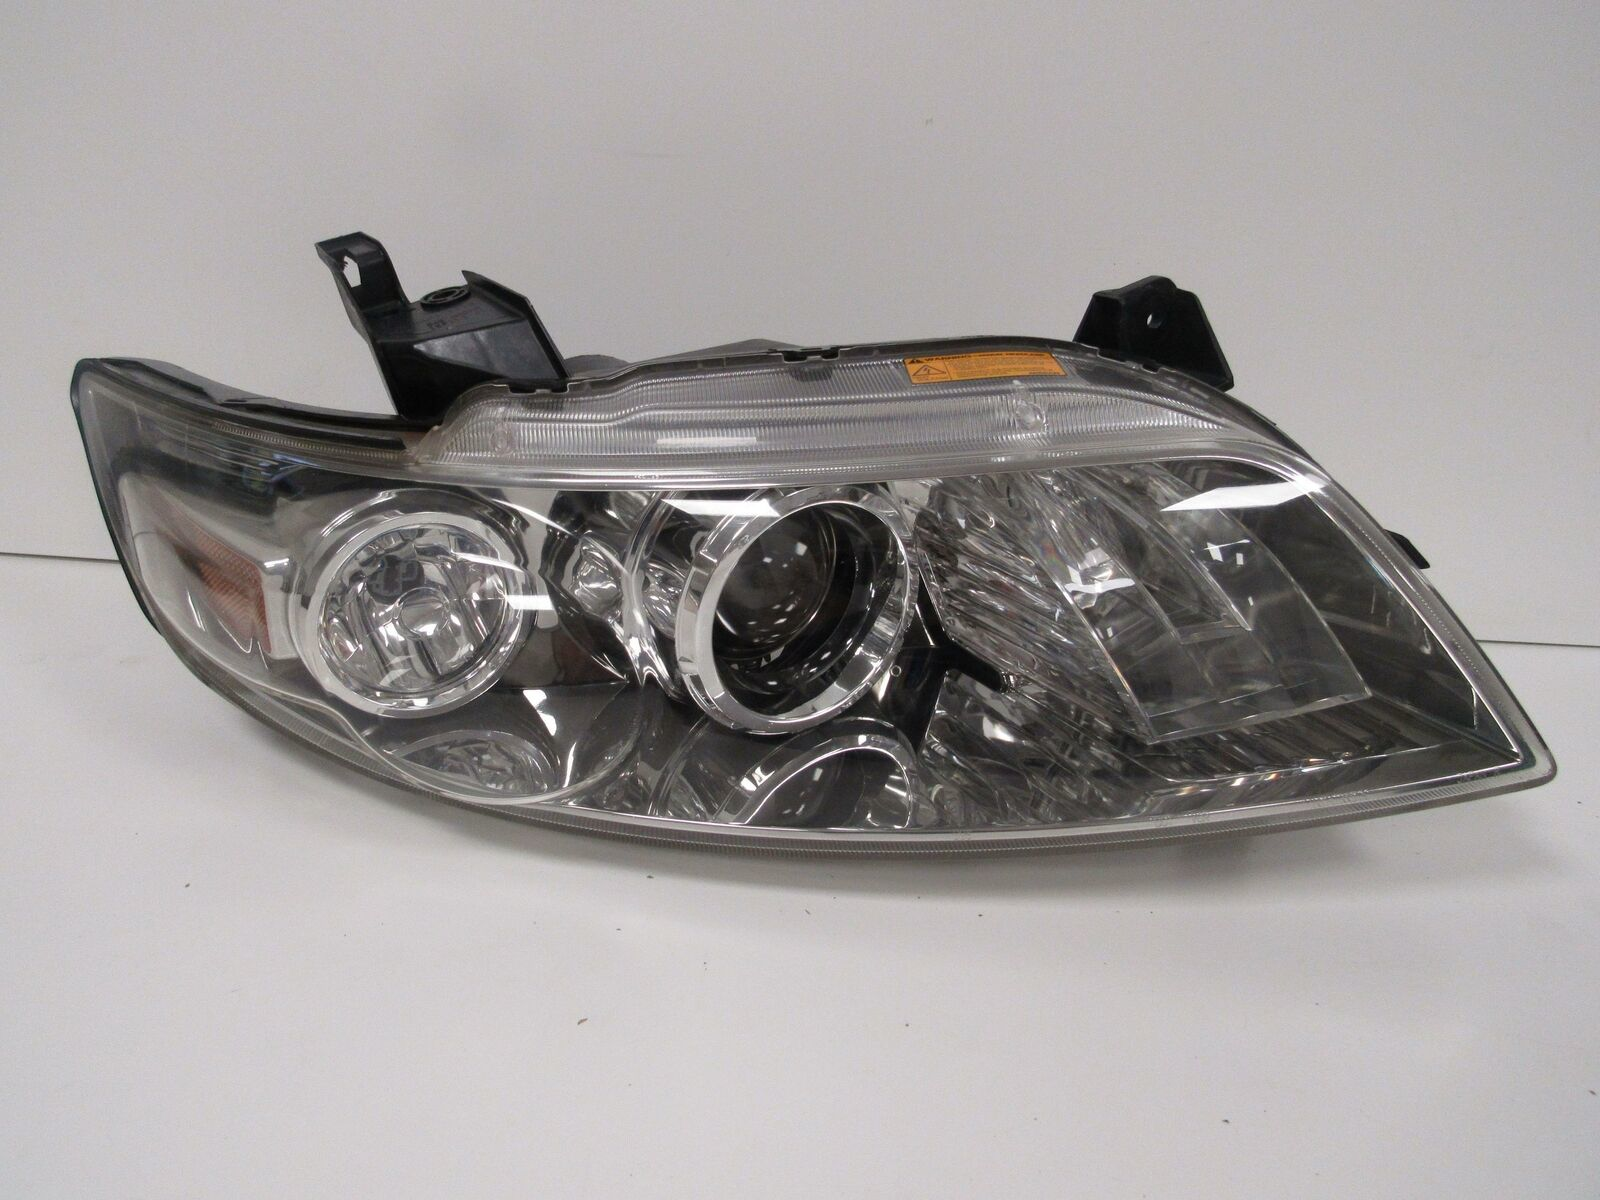 Primary image for 2007 2008 INFINITI FX35 FX45 RH PASSENGER HEADLIGHT OEM C75R